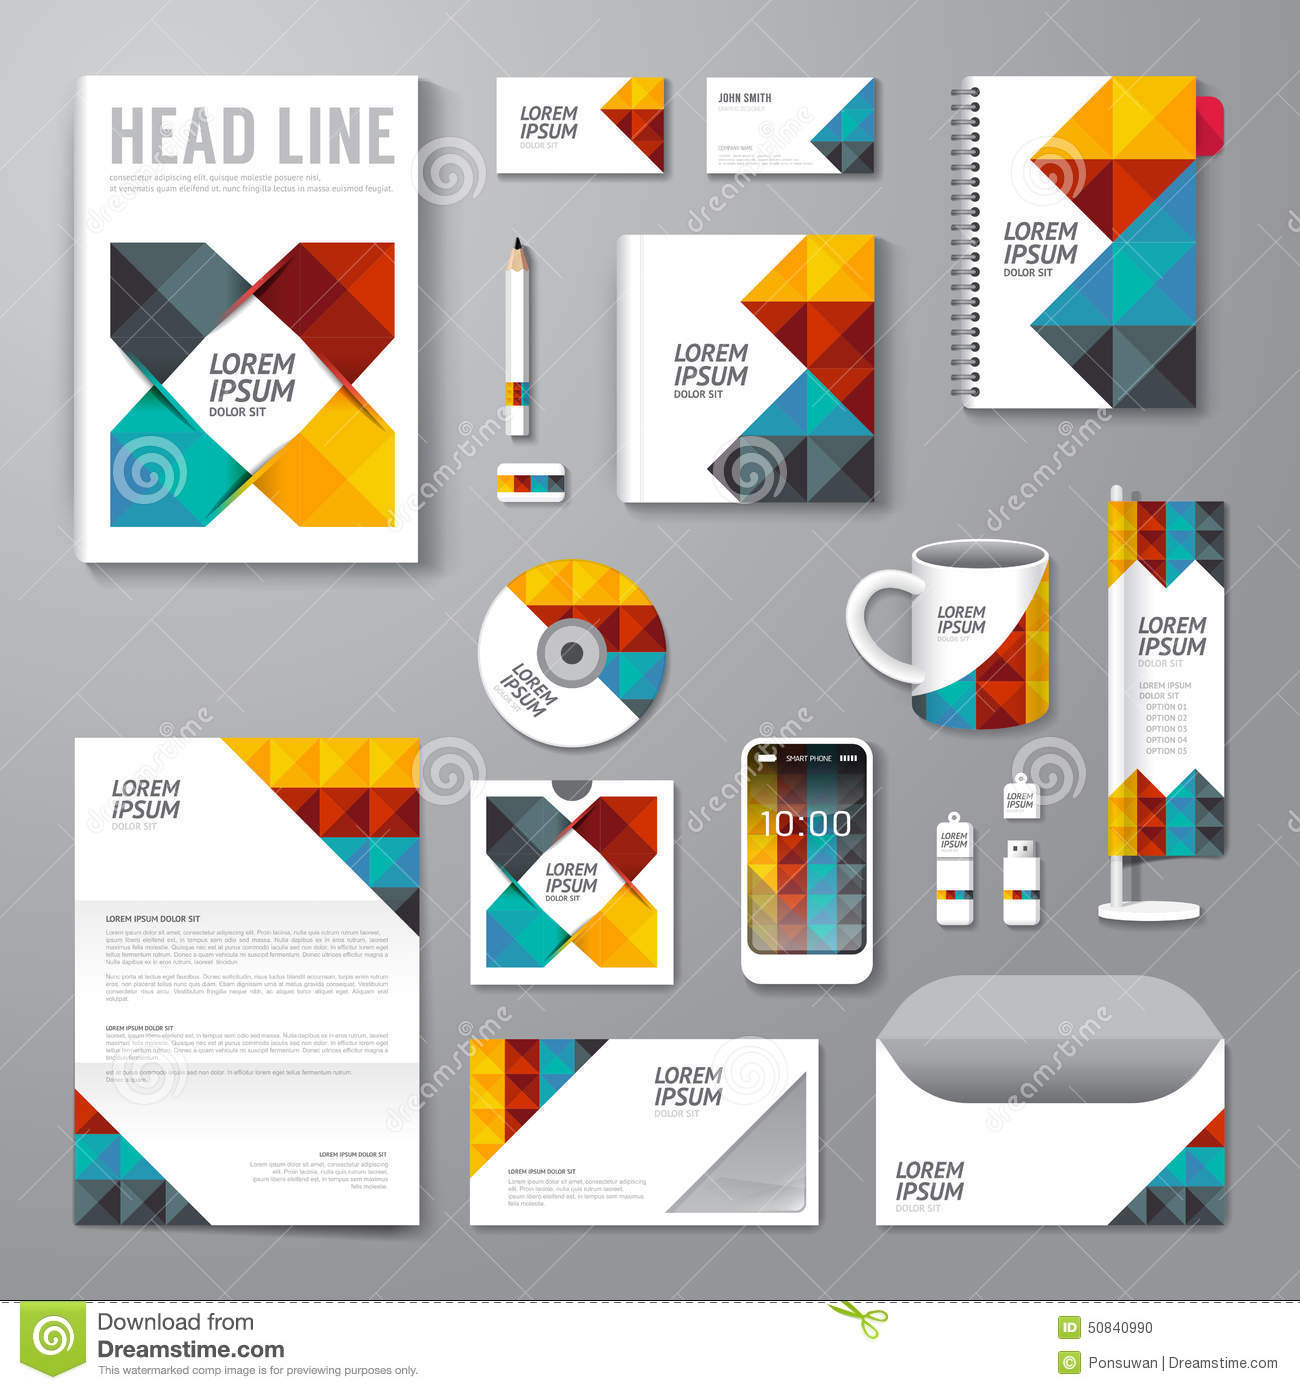 Gallery of poster design size